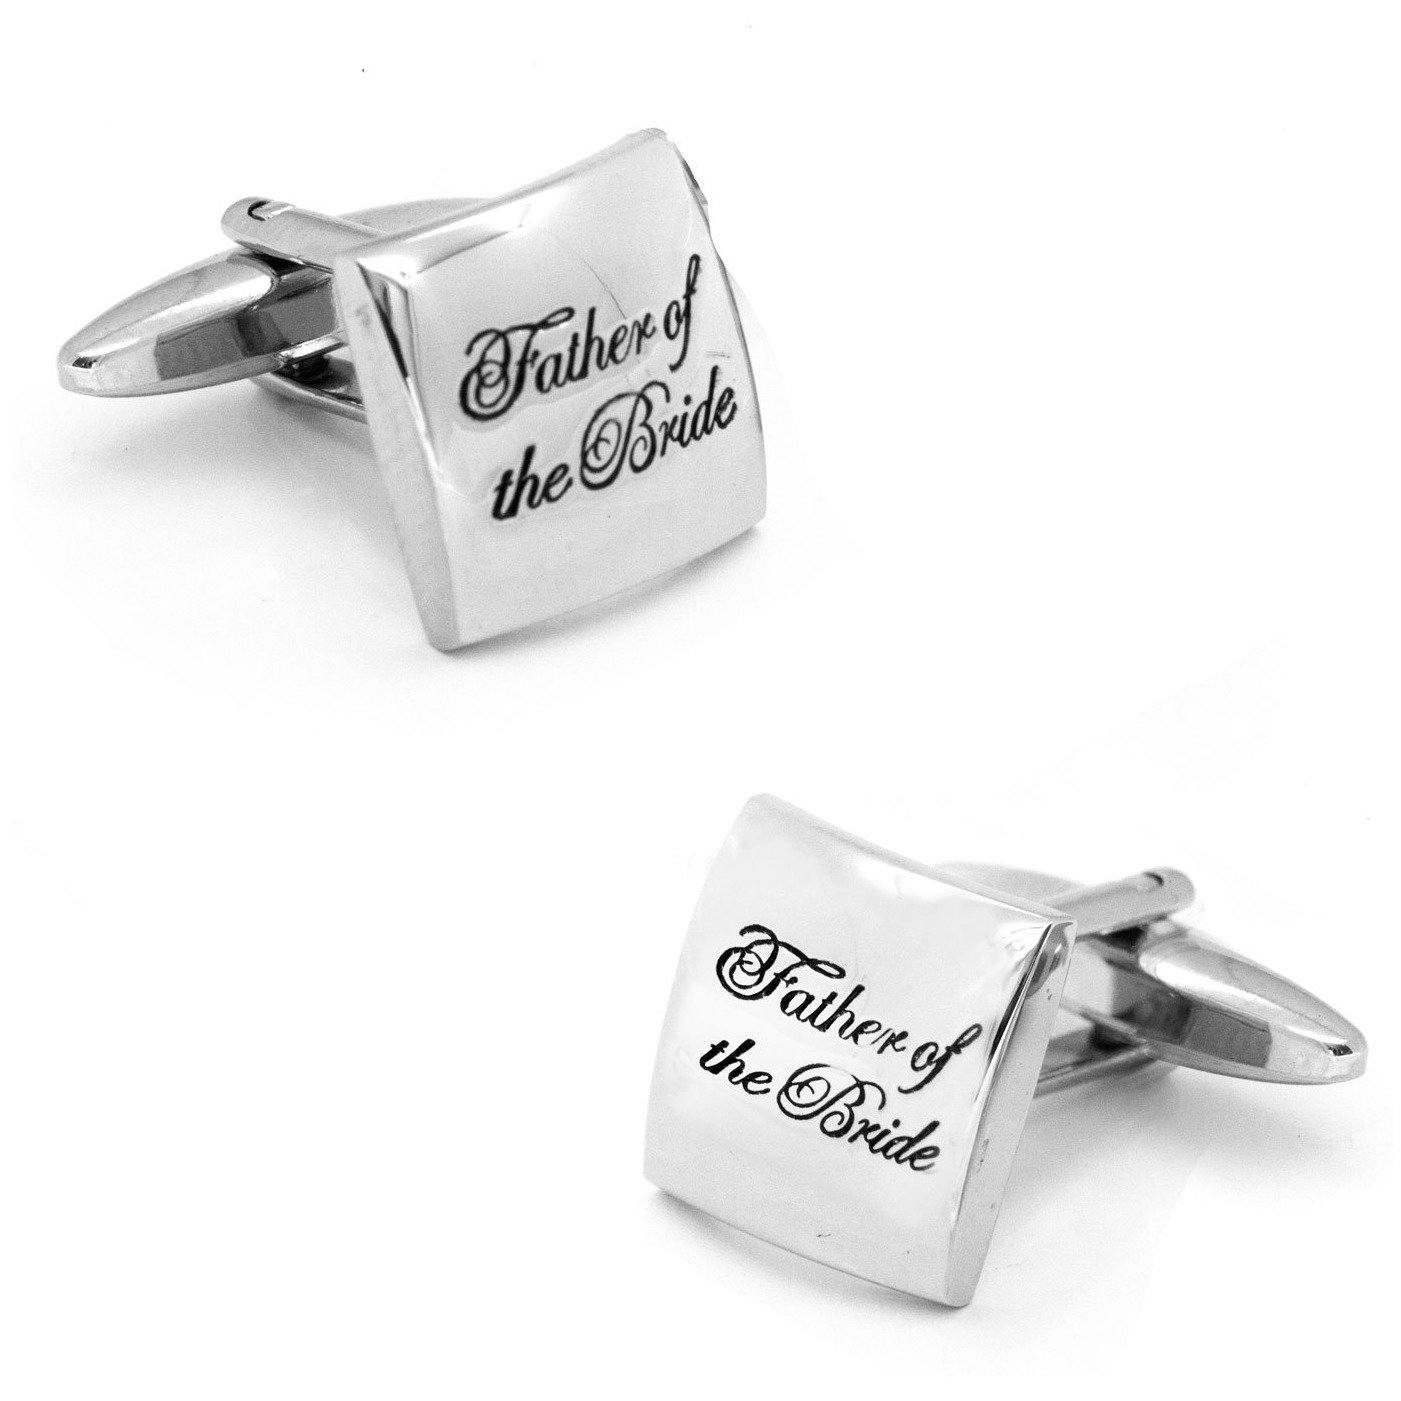 Father of the Bride Curved Silver, Wedding Cufflinks, Cuffed.com.au, CL9574, $29.00